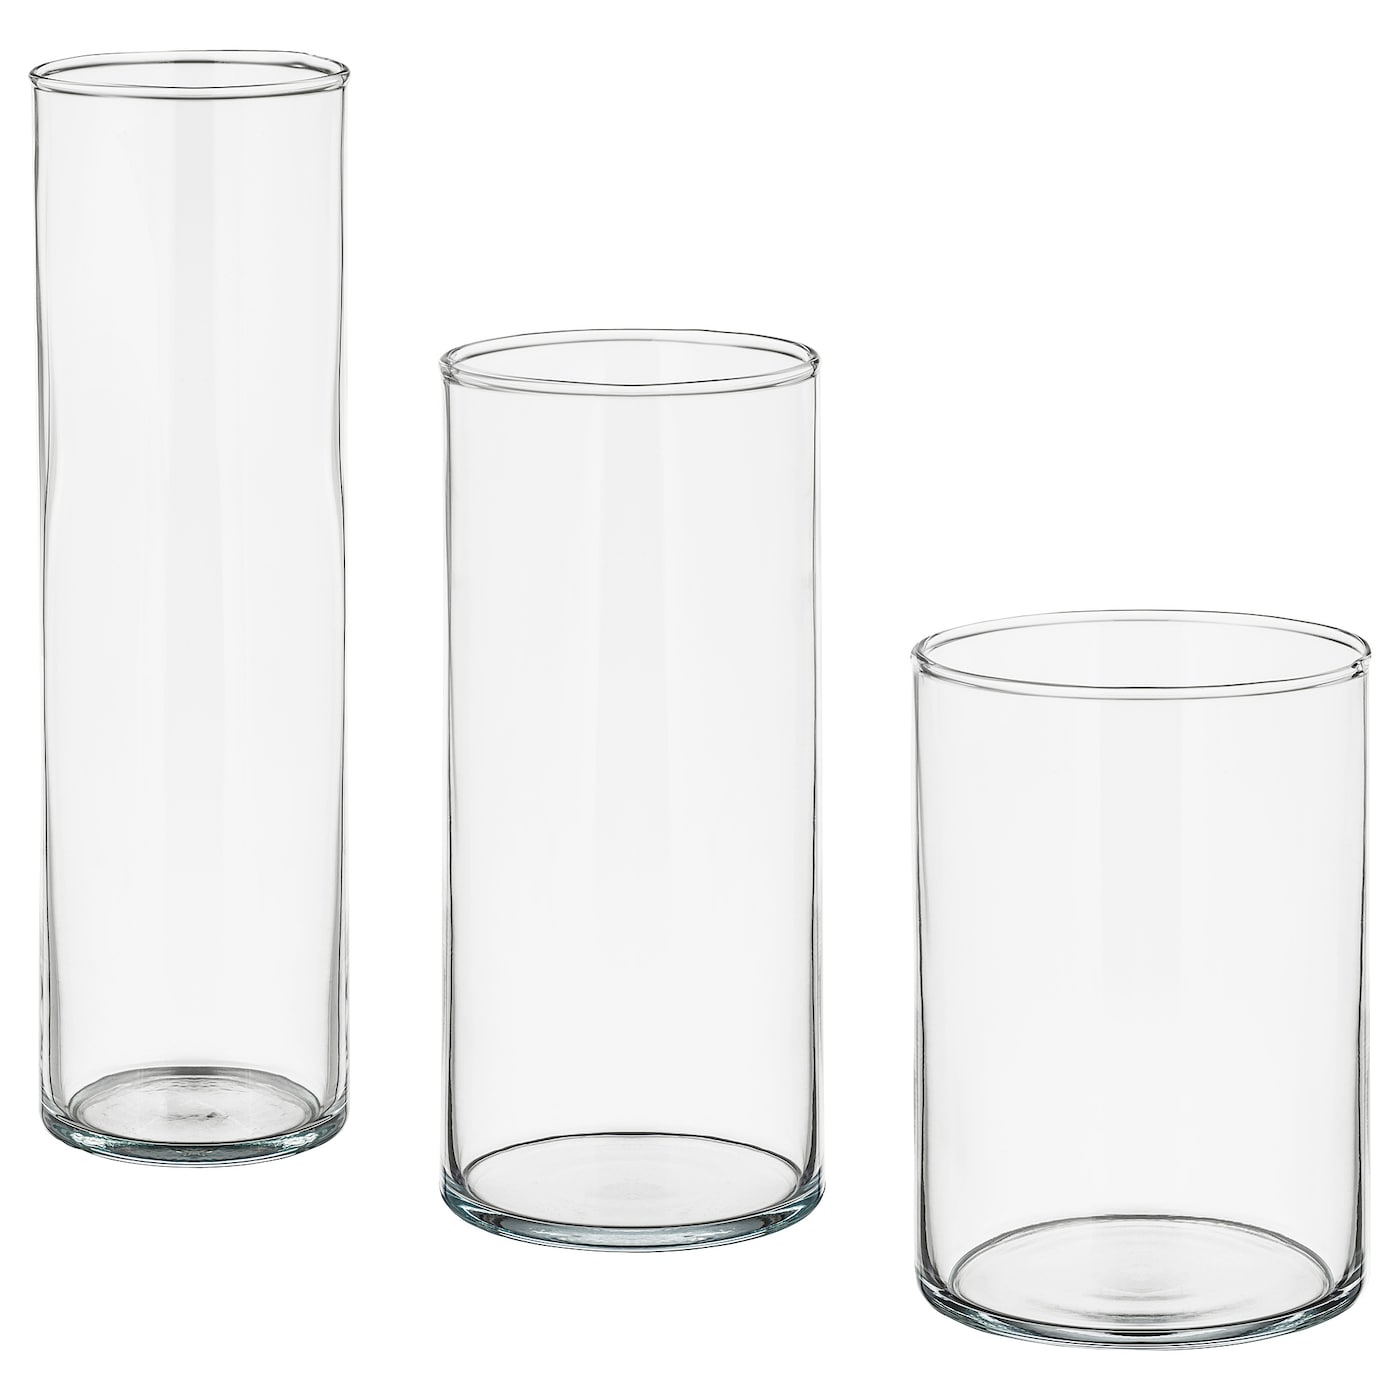 cylinder vase lot de 3 verre transparent ikea. Black Bedroom Furniture Sets. Home Design Ideas